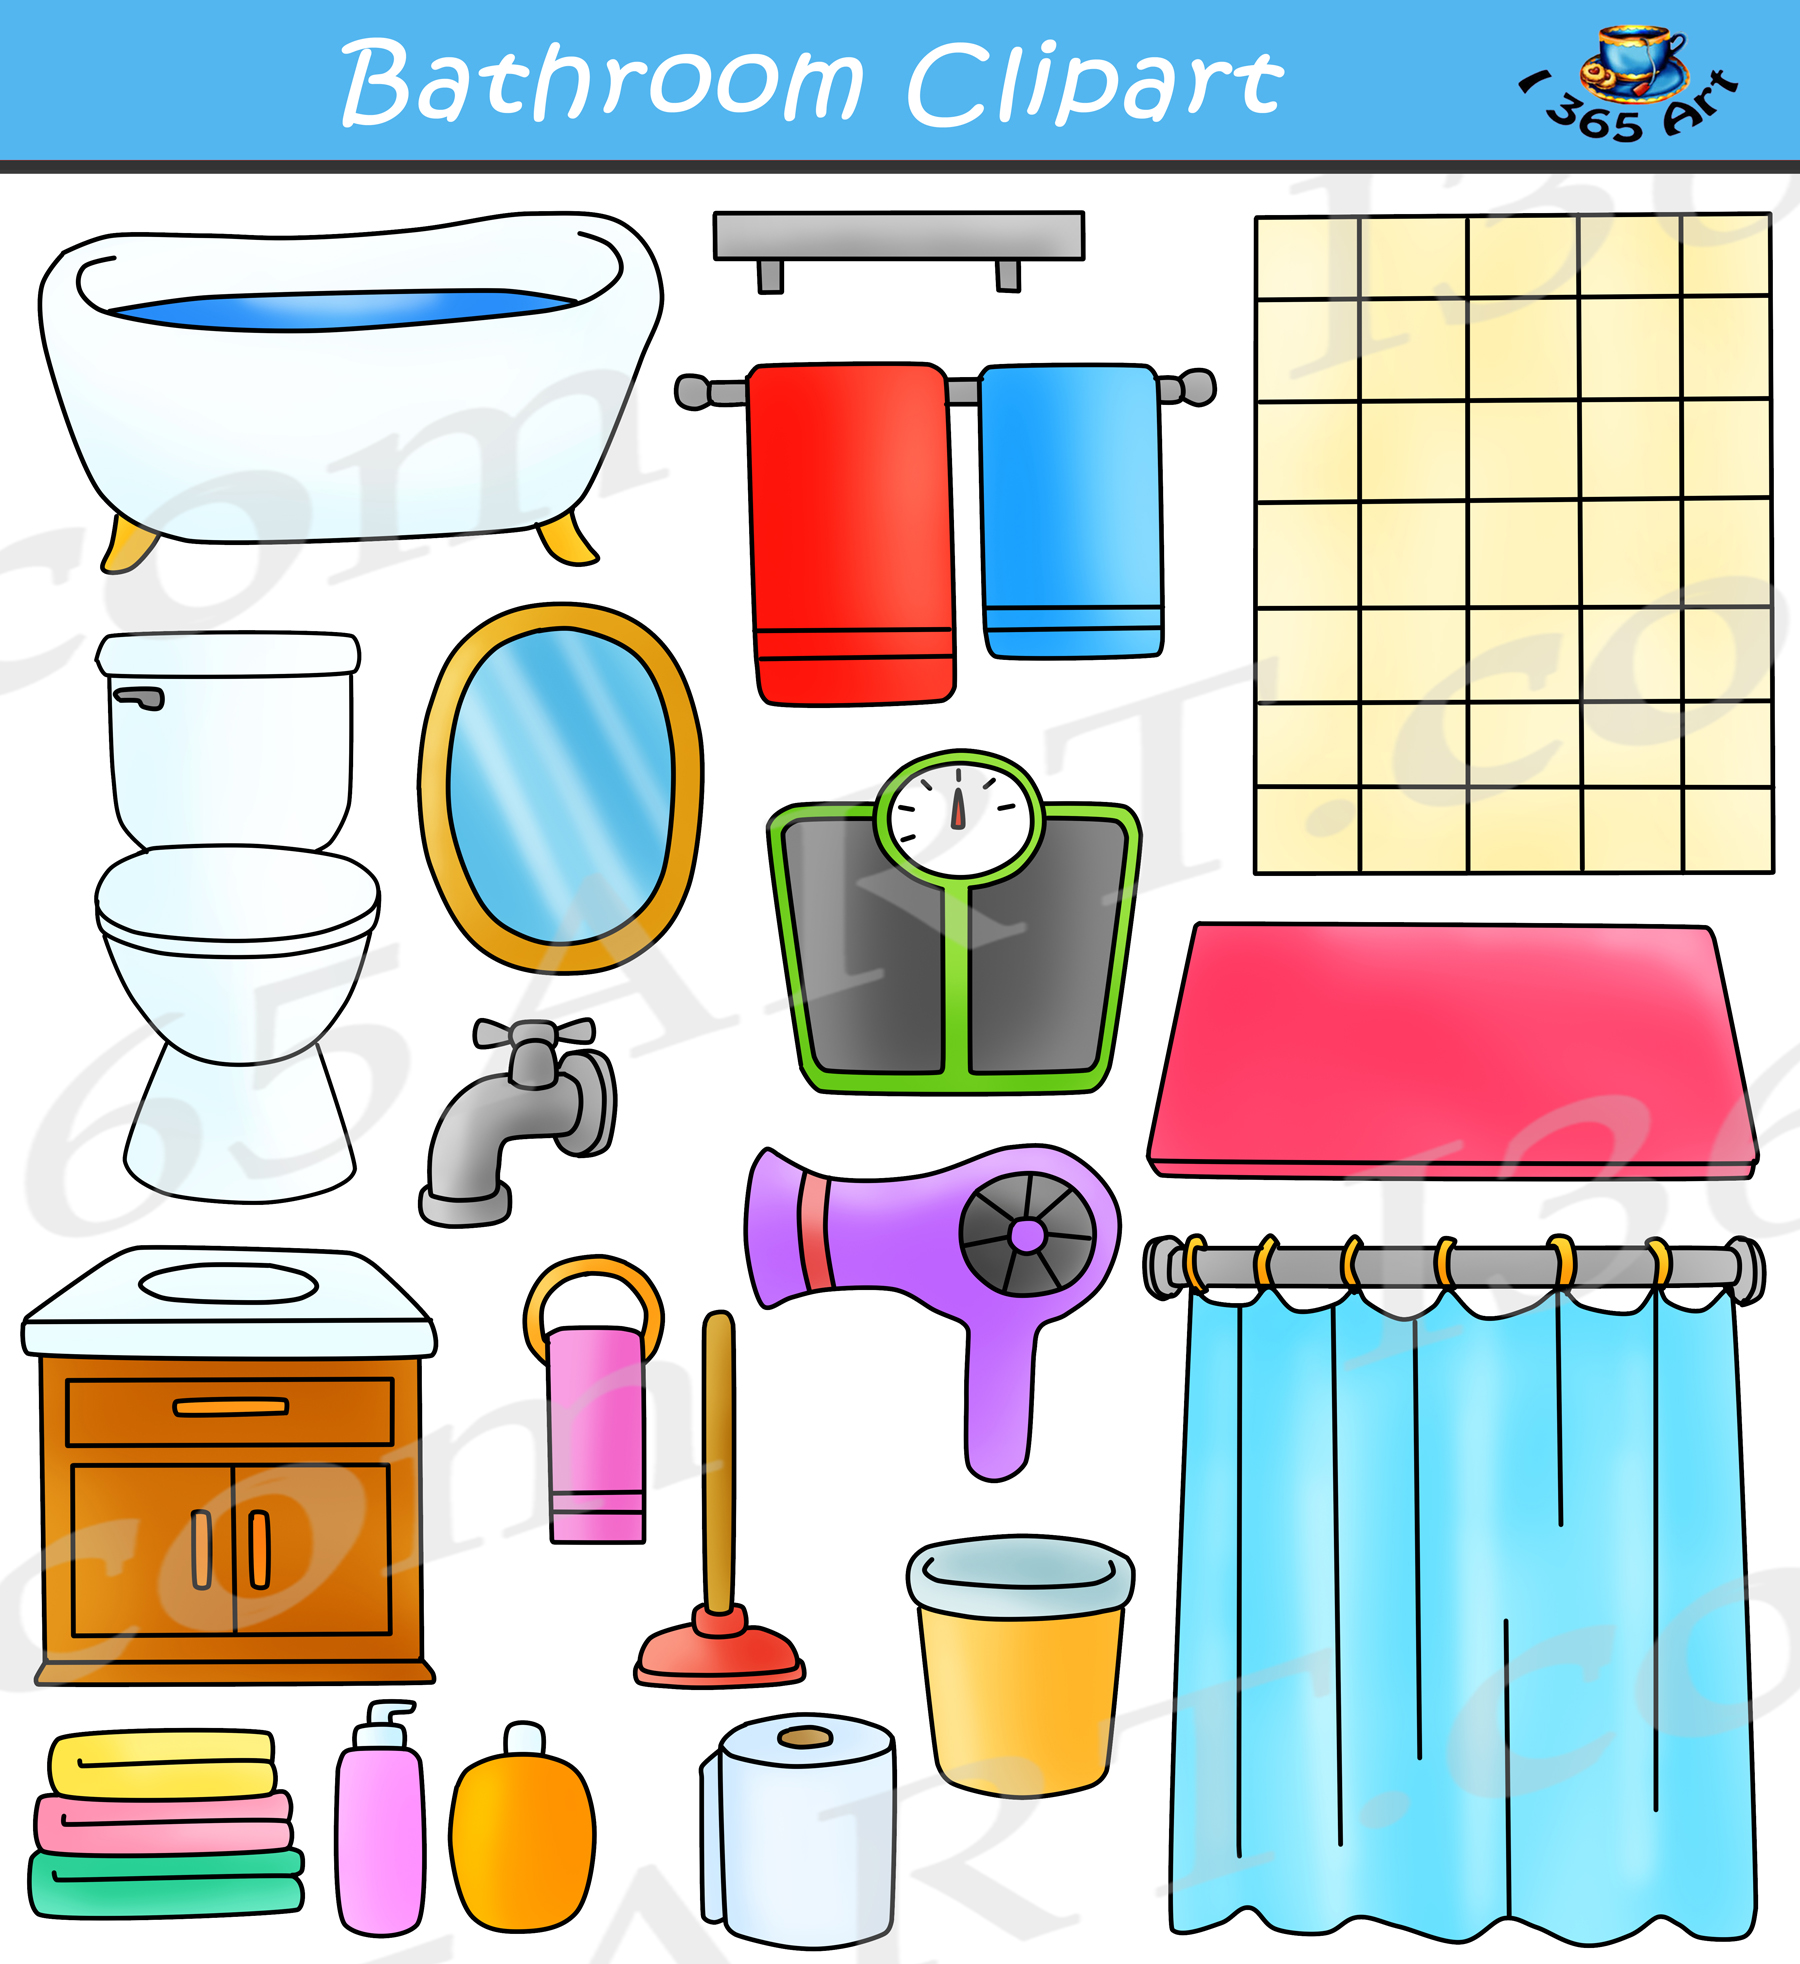 Bathroom pictures clipart svg transparent Bathroom Clipart Set svg transparent